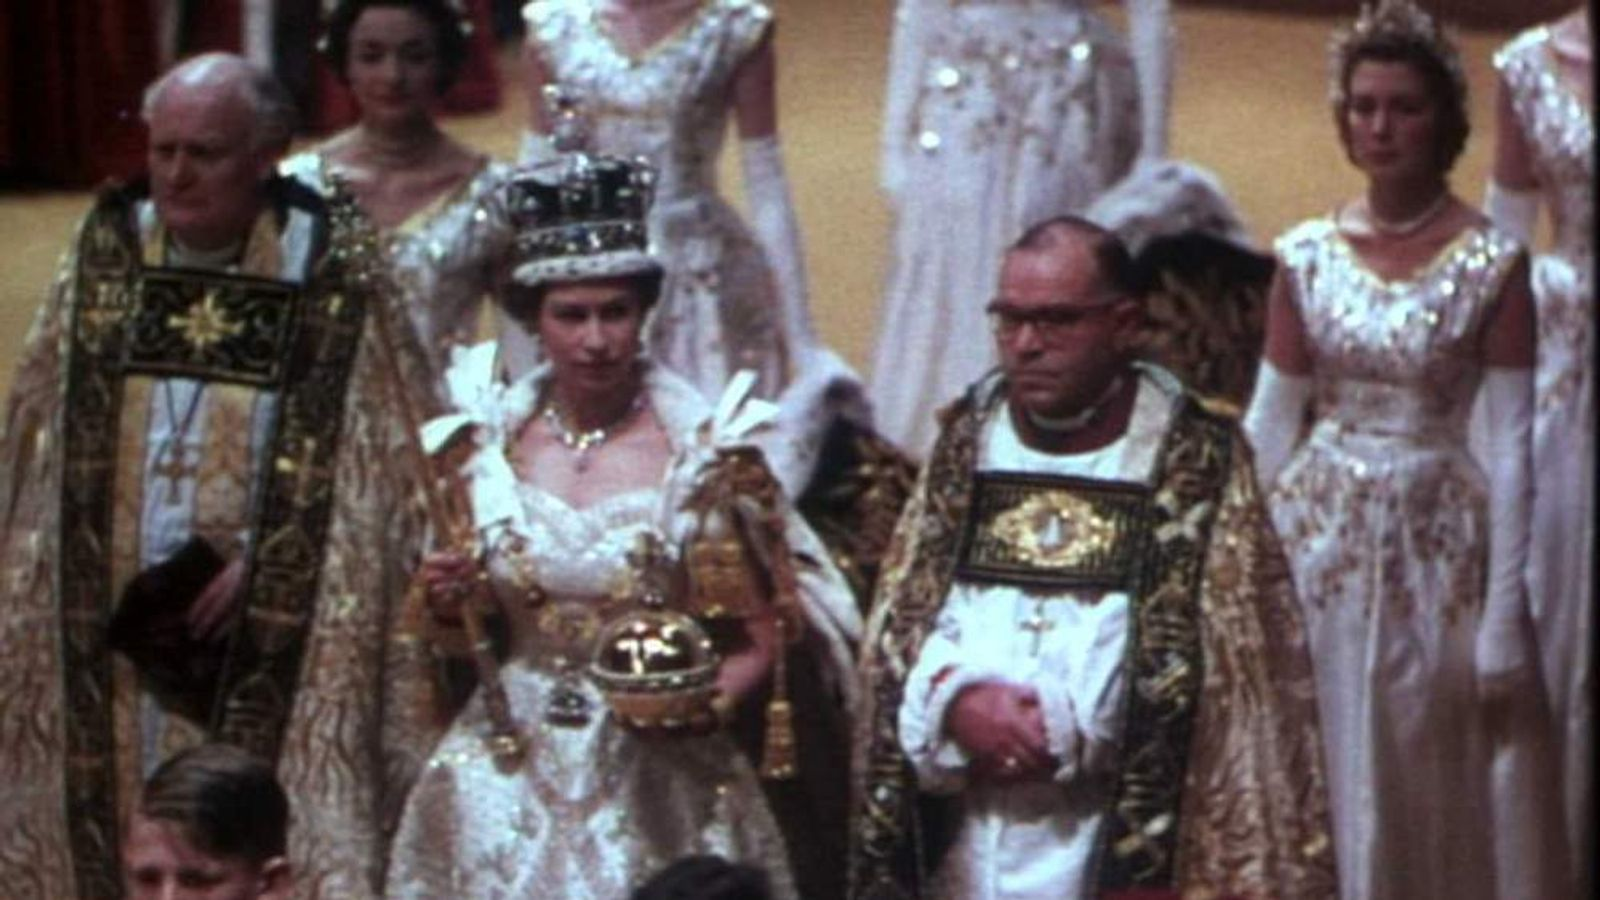 Queen Elizabeth II's coronation